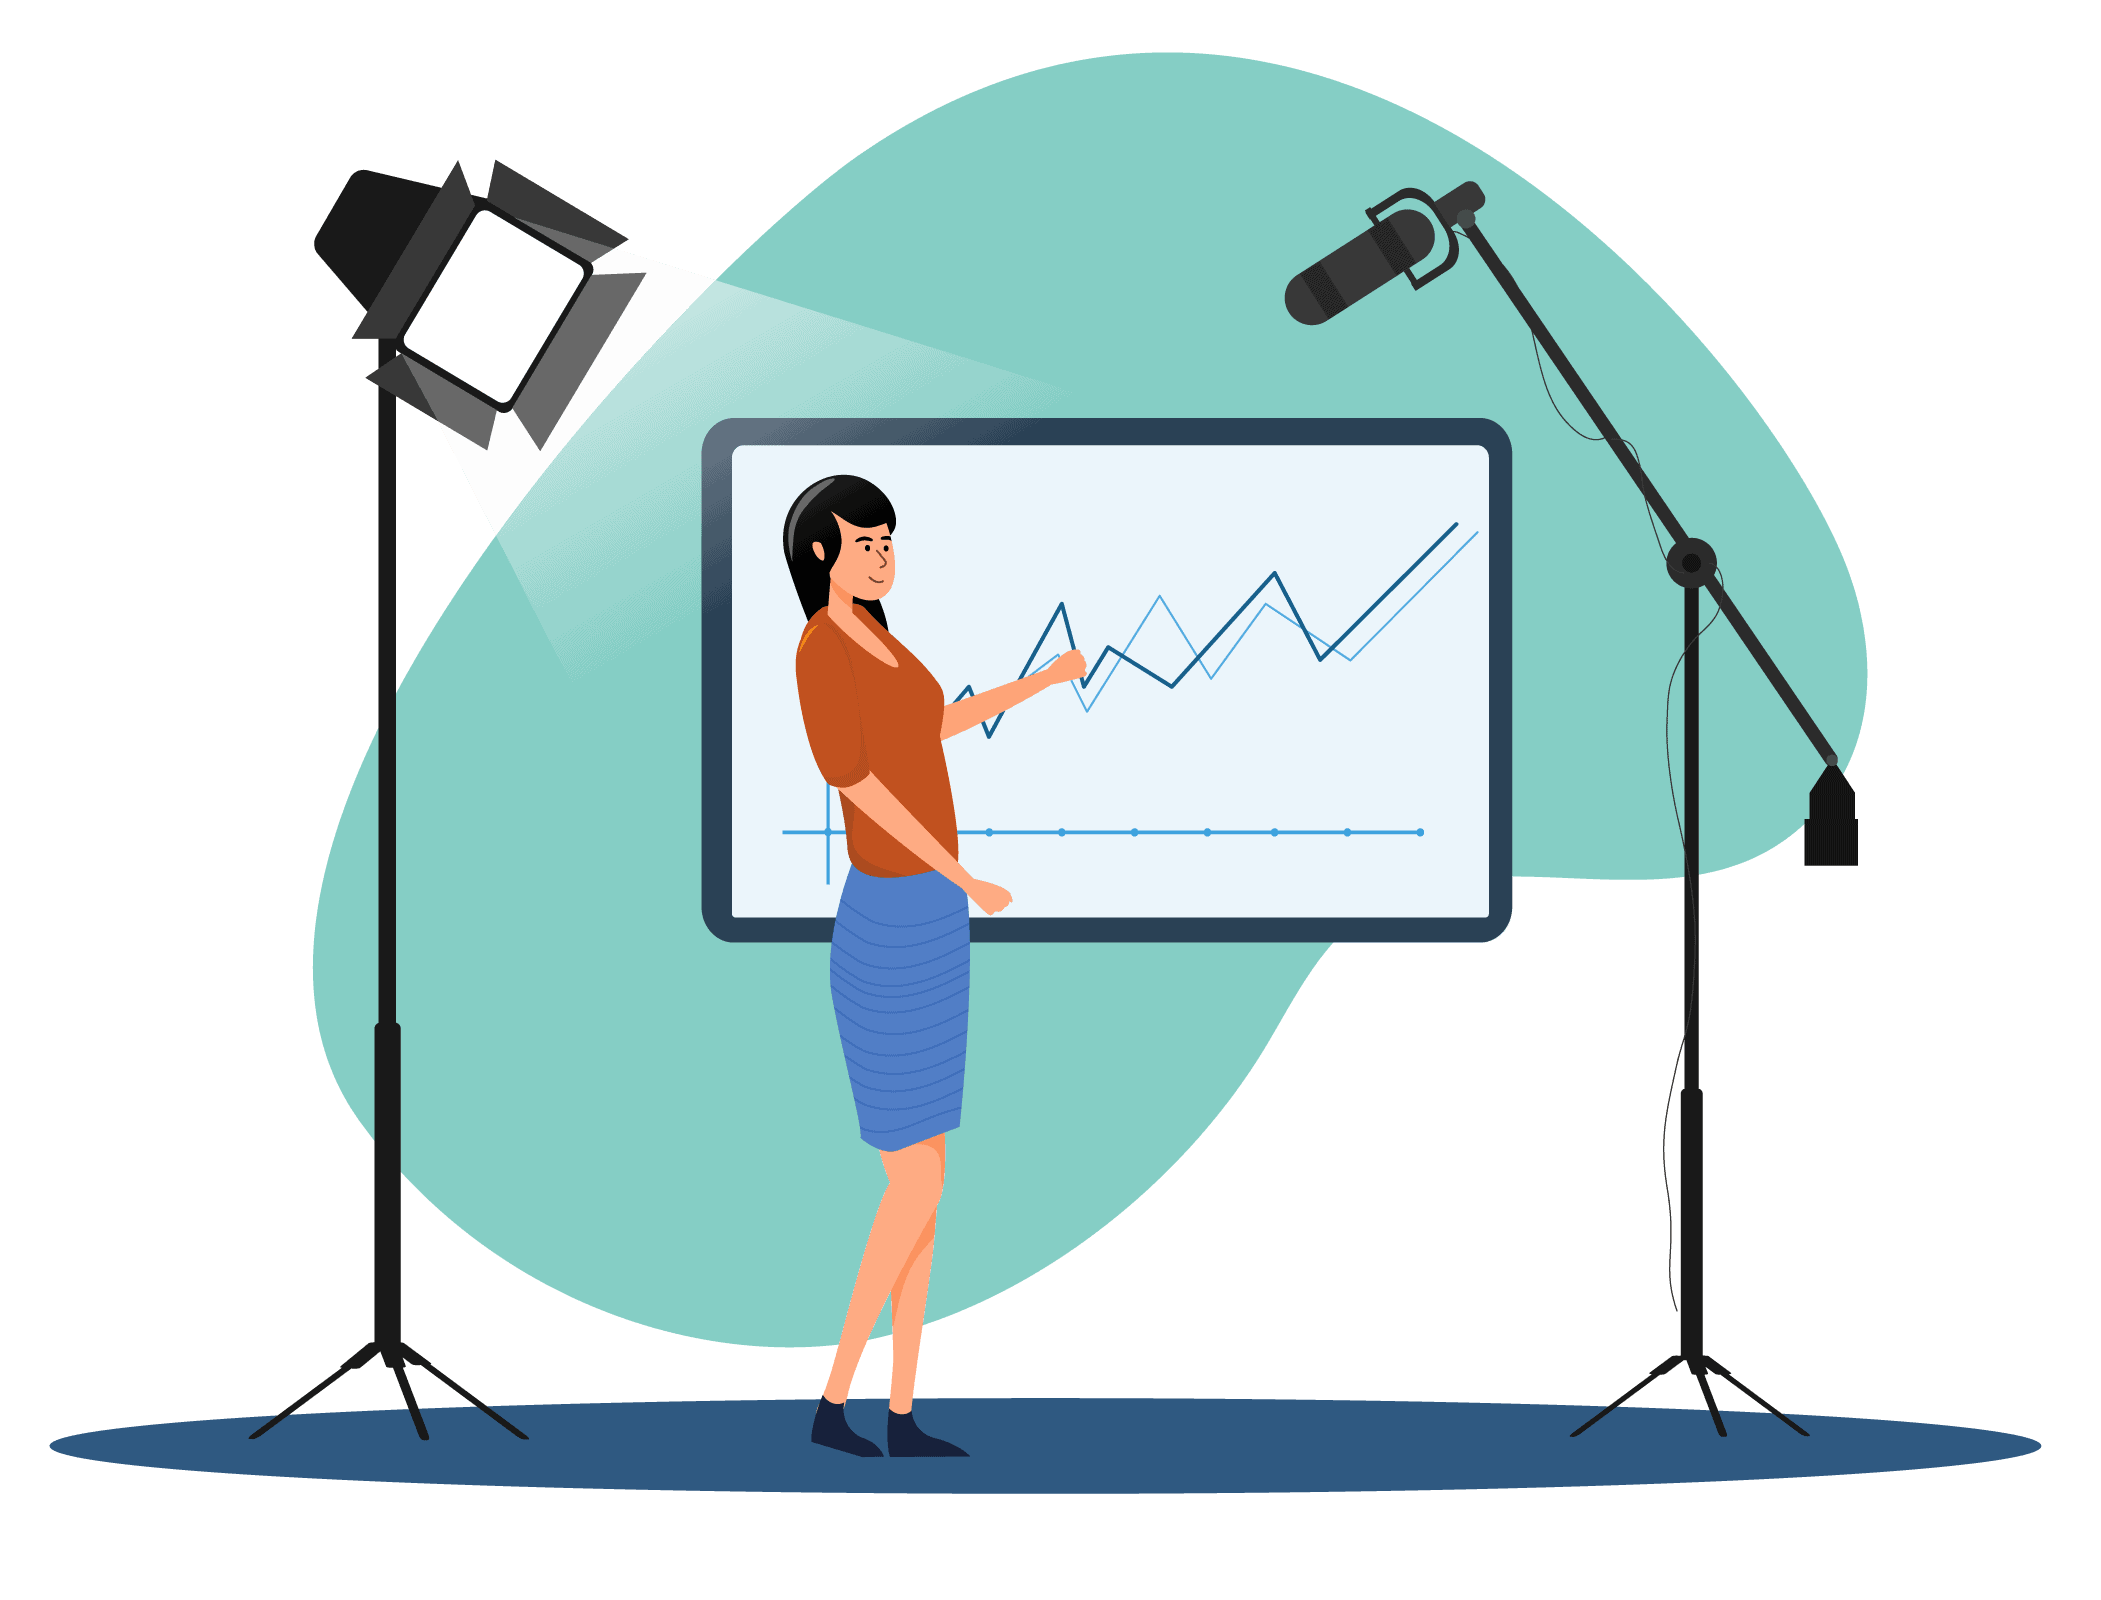 Actor Presenter - Cost of Video Production